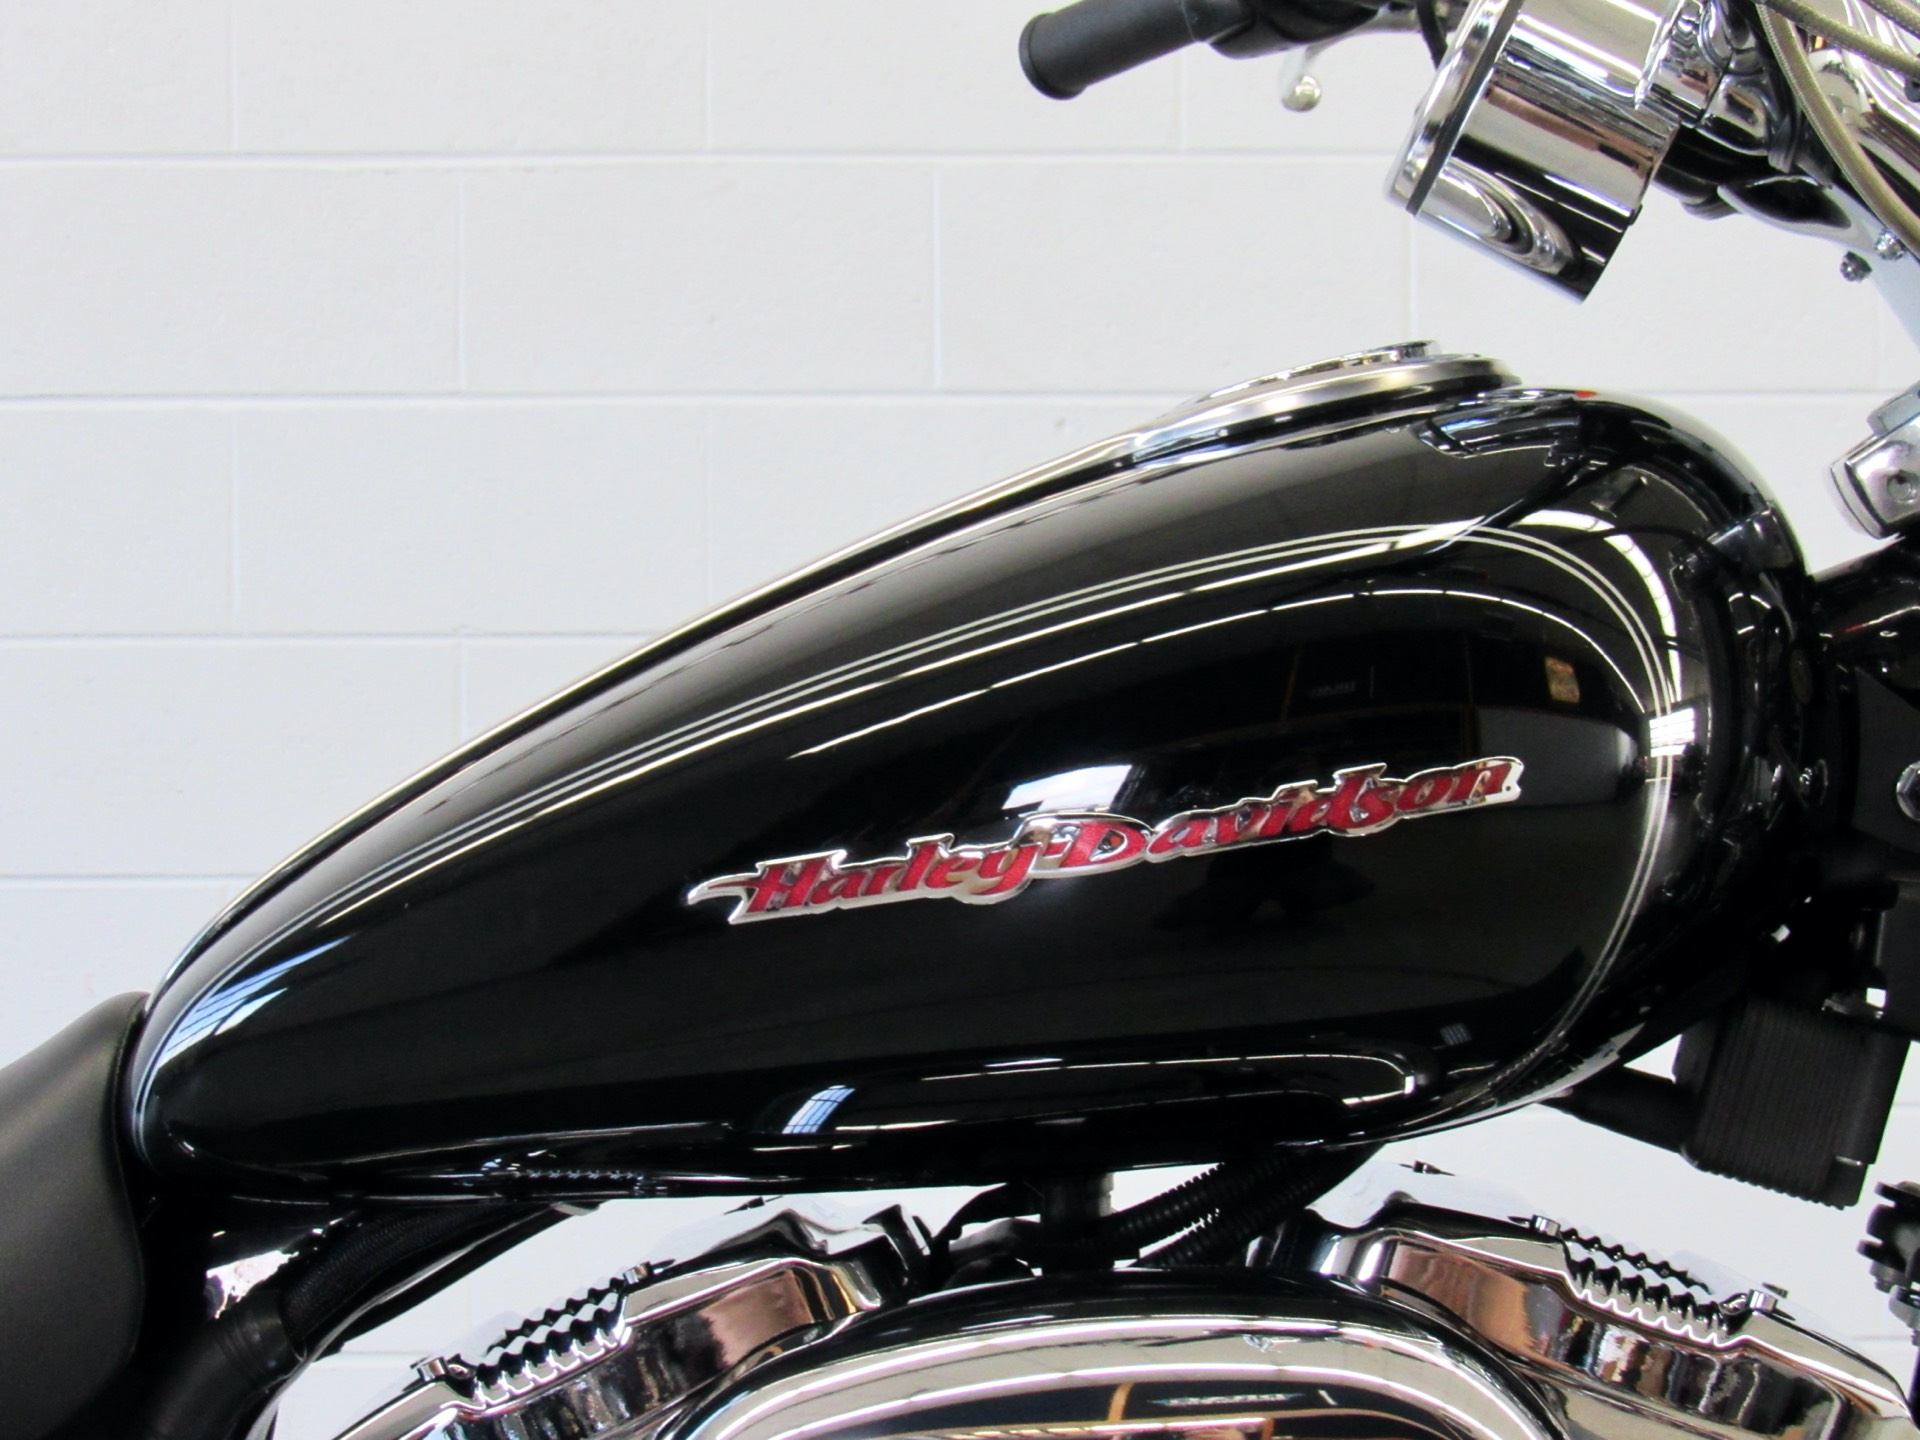 2004 Harley-Davidson Sportster® XL 1200 Custom in Fredericksburg, Virginia - Photo 13